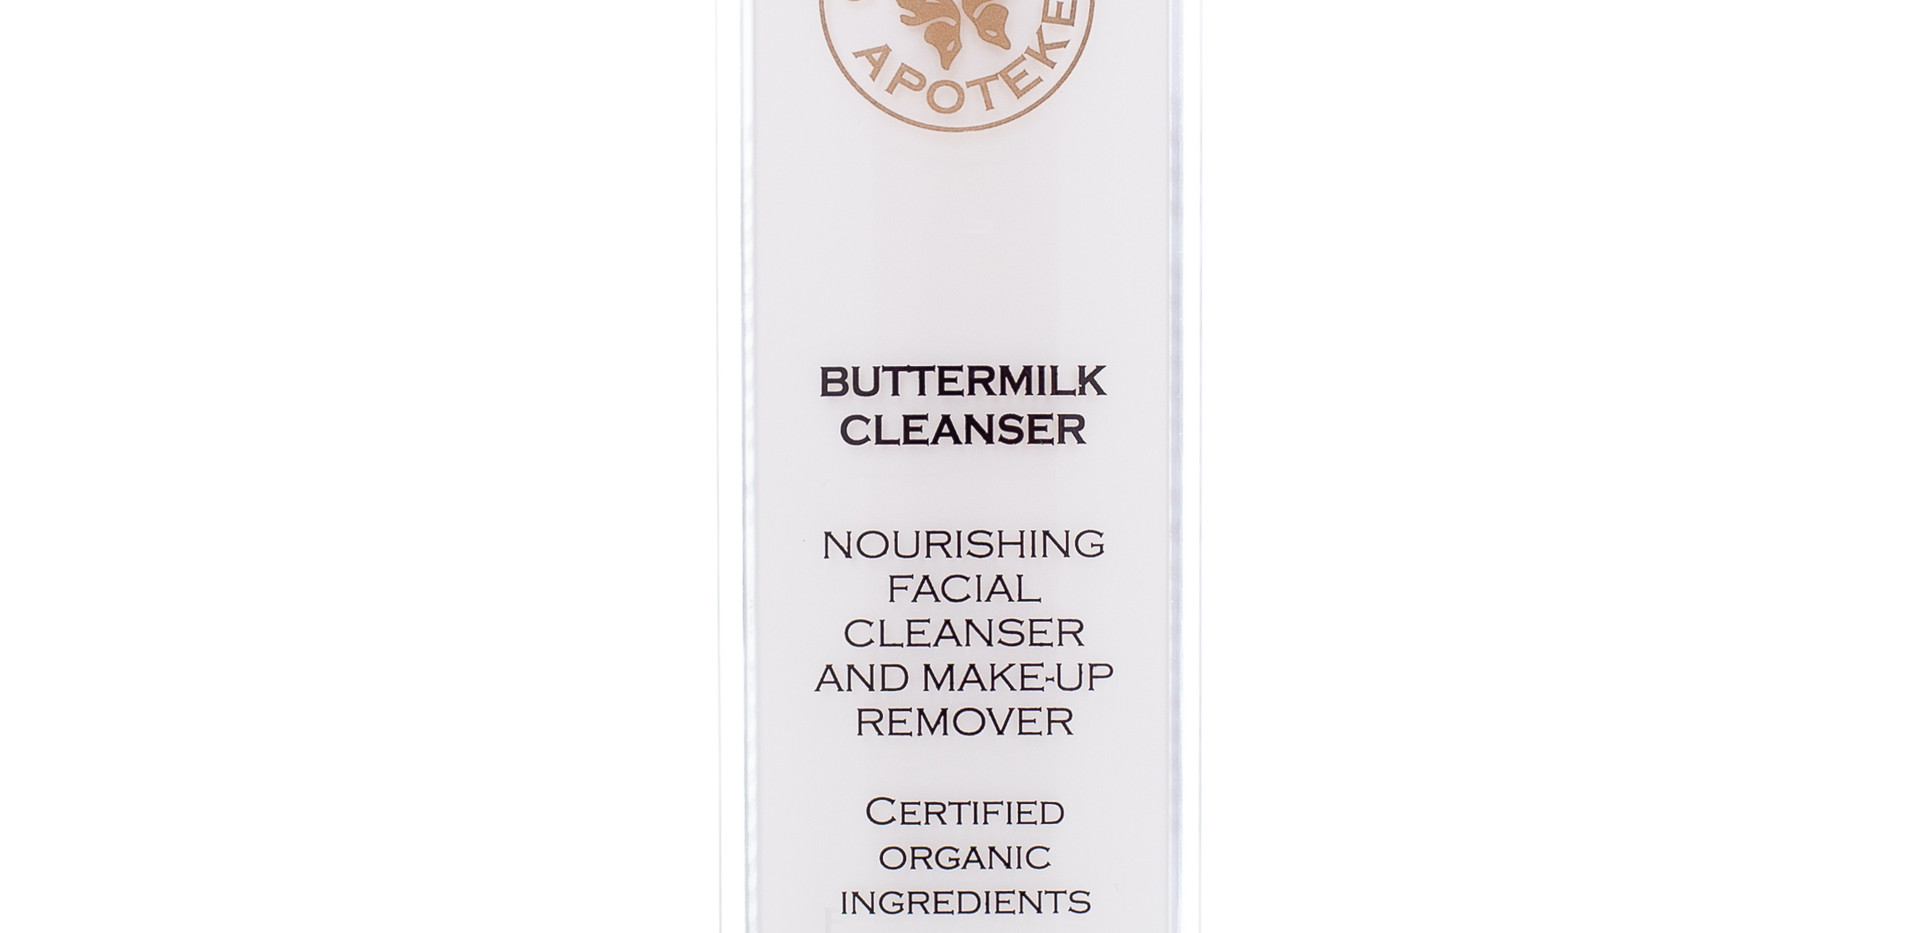 Organic Apoteke Buttermilk Cleanser. Full Size, £41.95